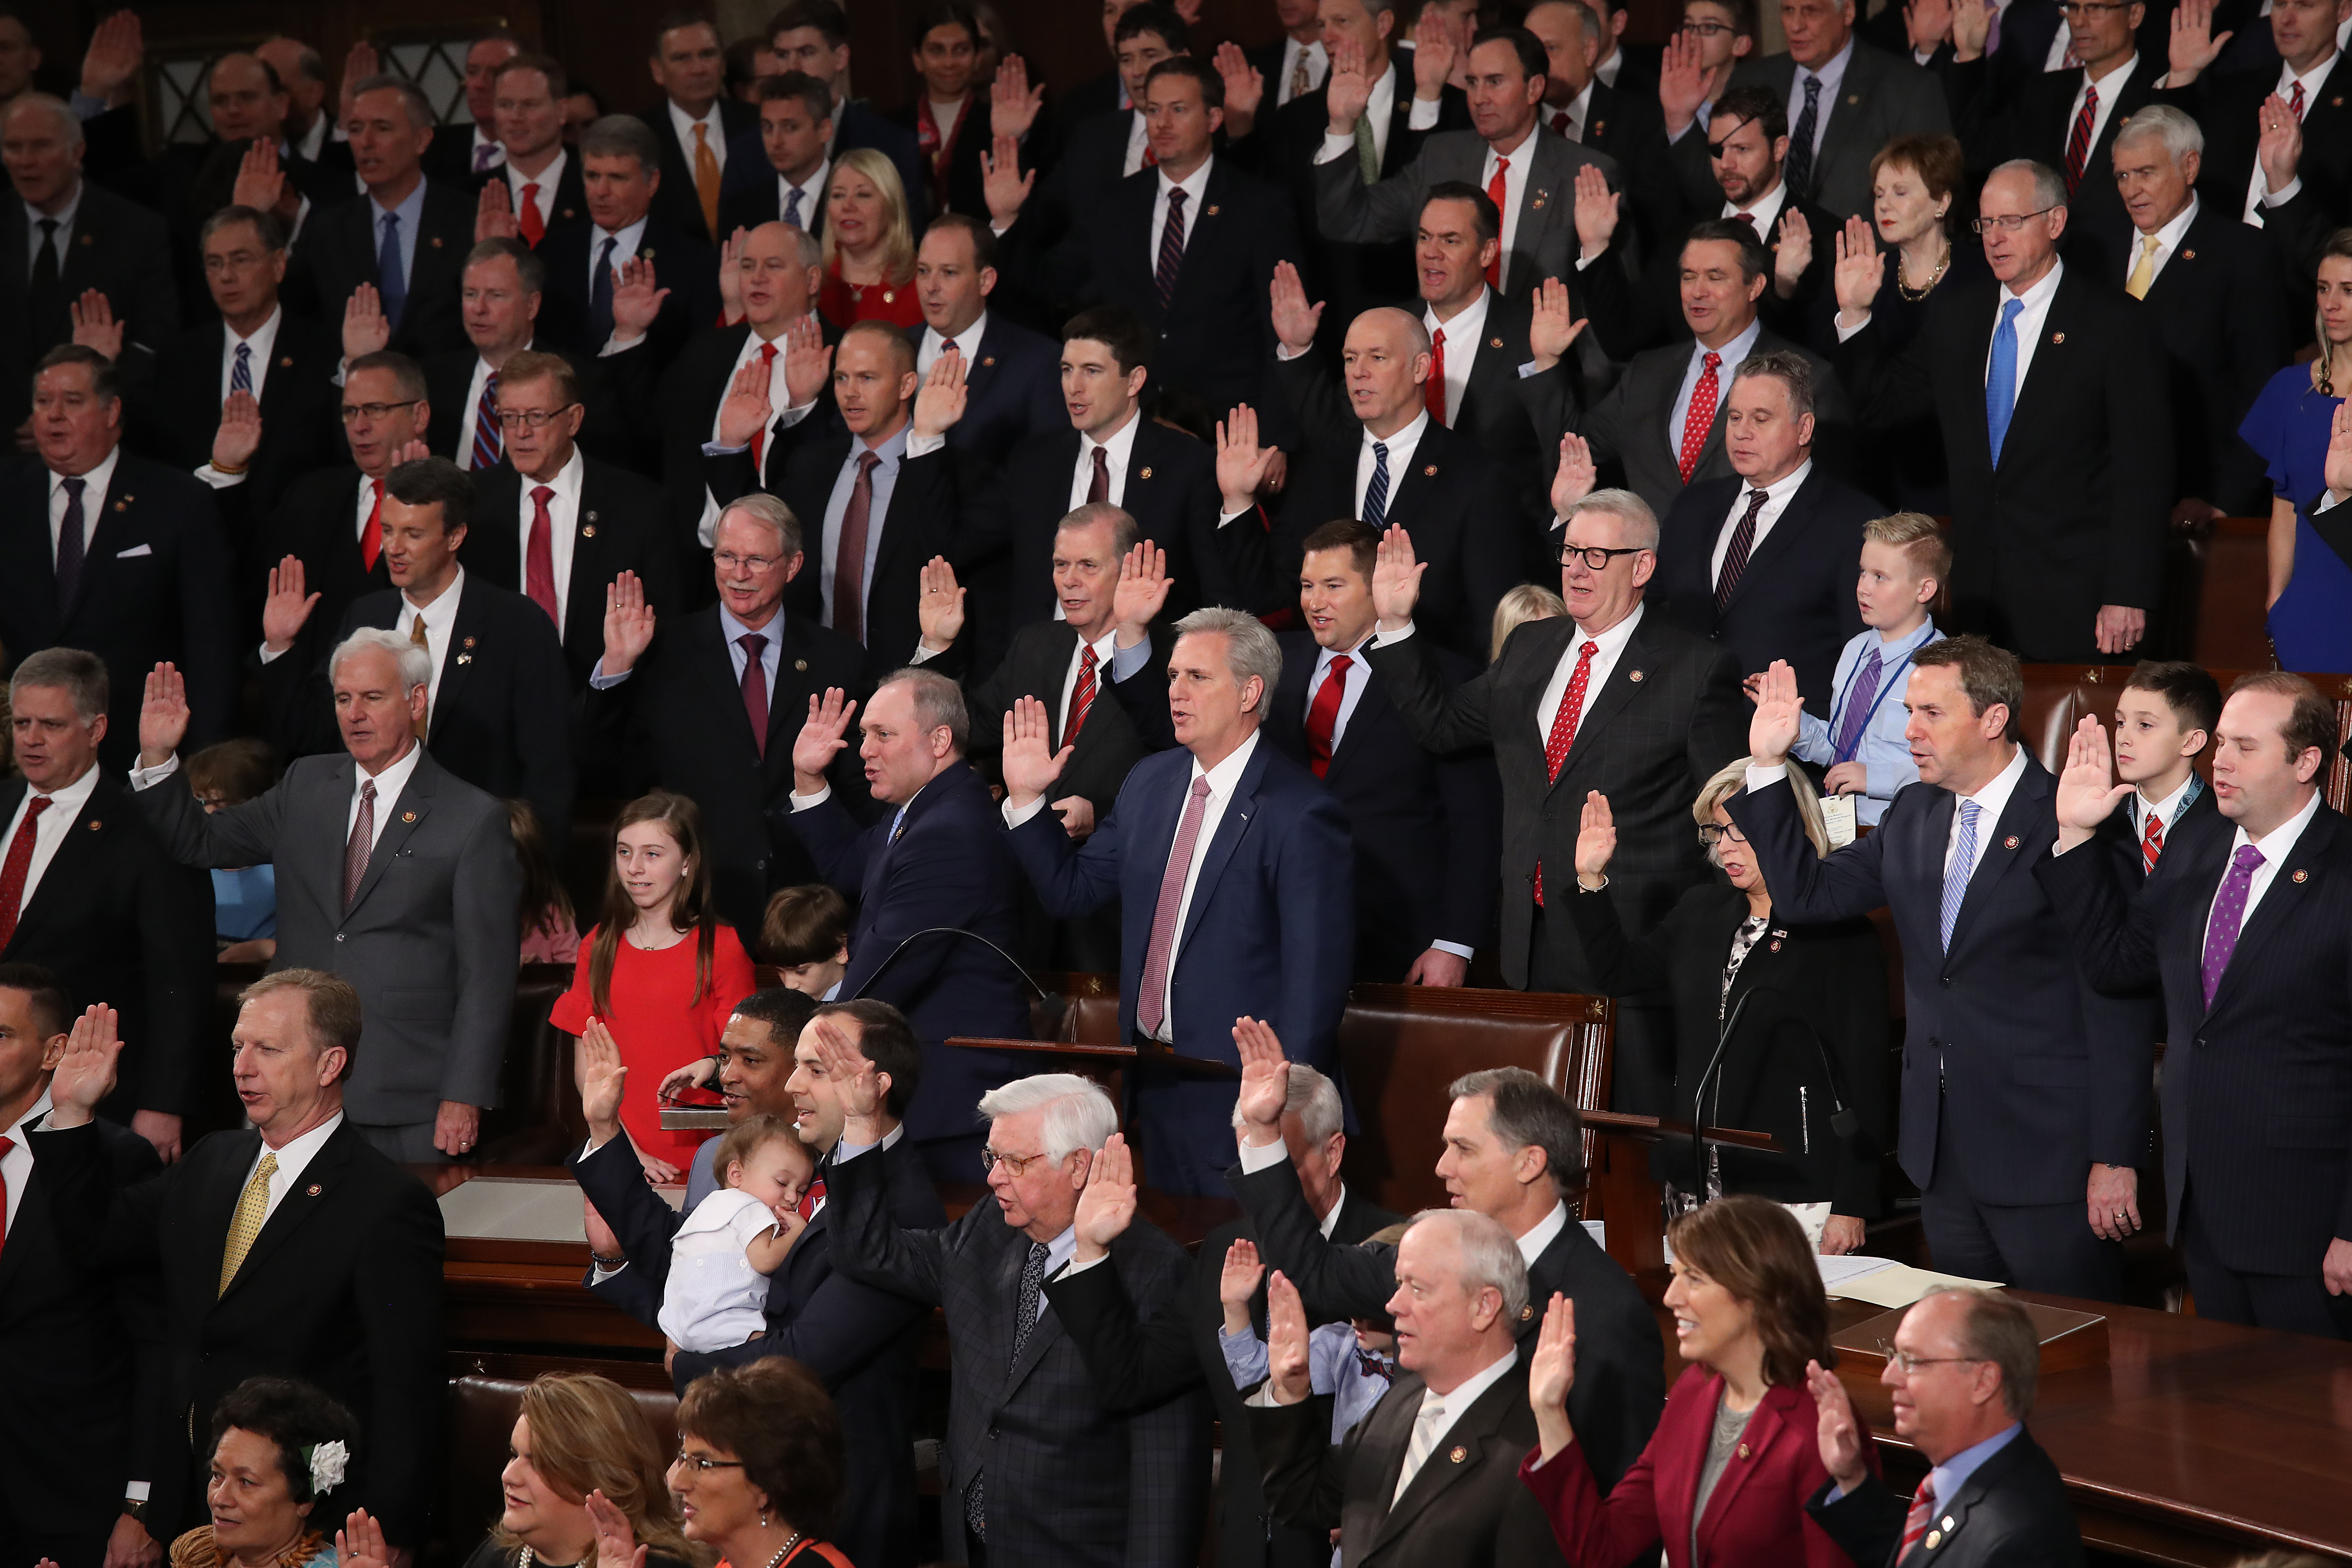 Republican members of the House of Representatives are sworn in during the first session of the 116th Congress at the U.S. Capitol.